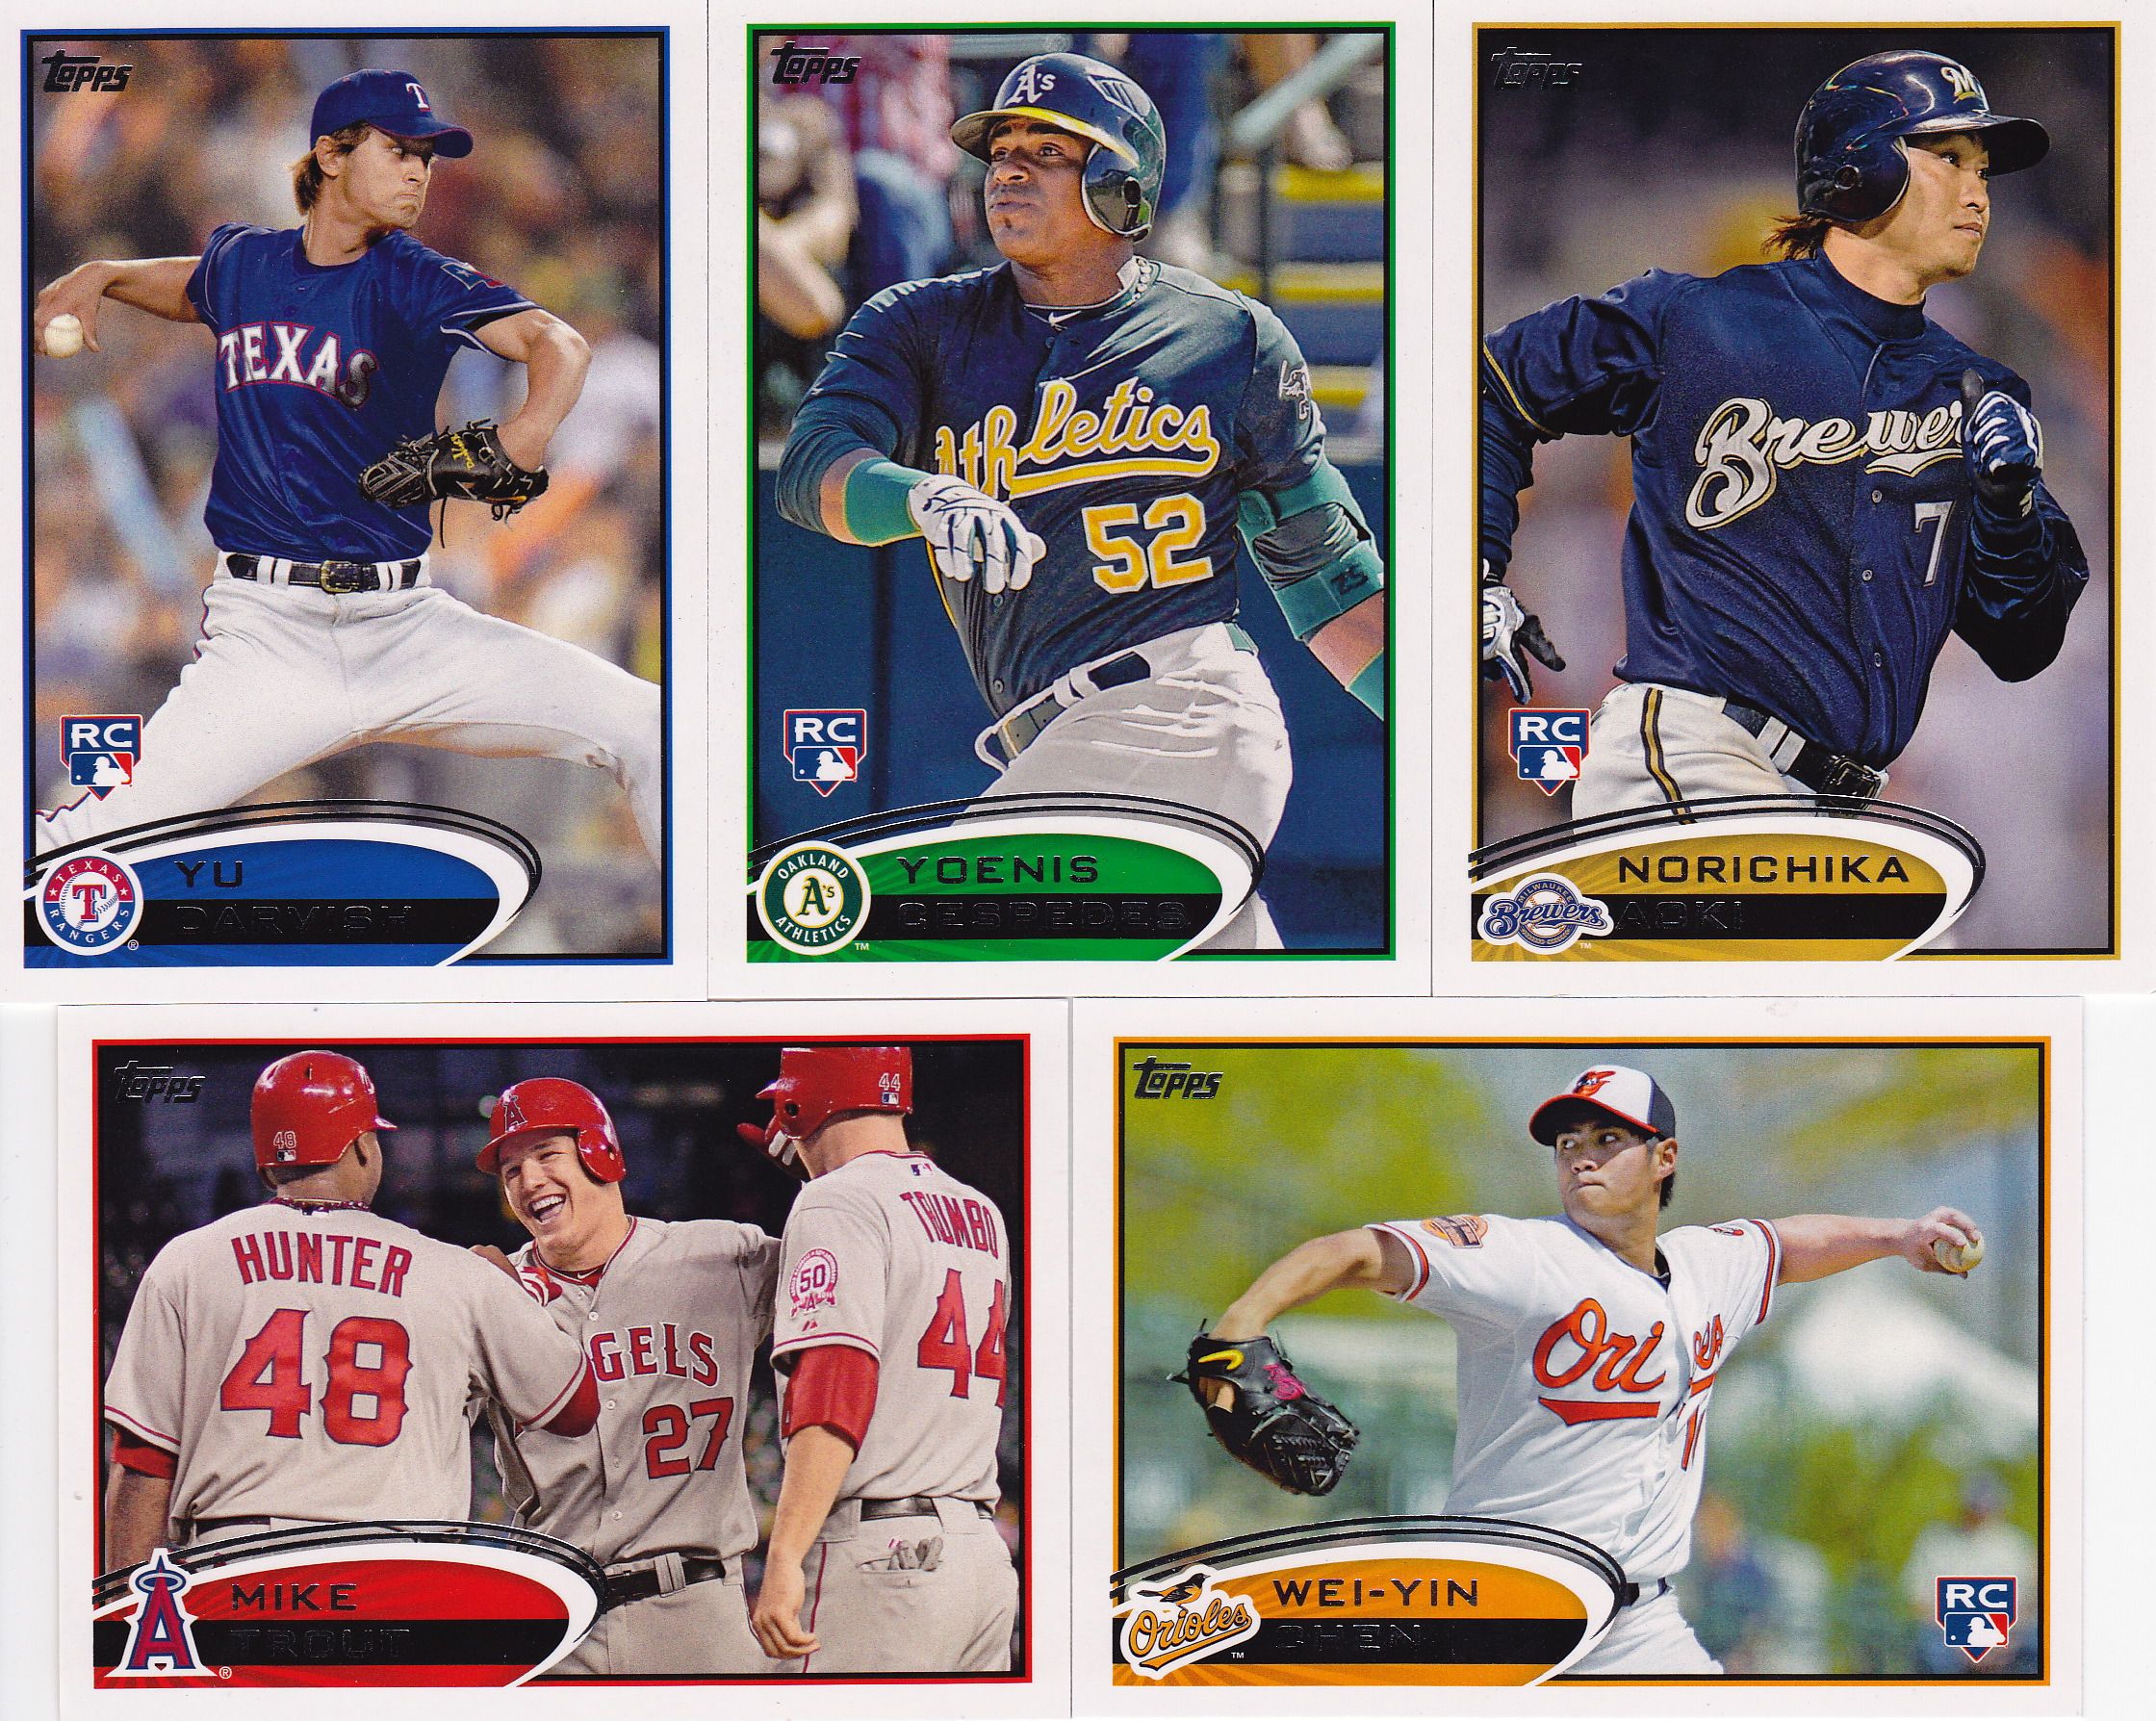 2012 Topps Series 2 Base Cards Lifetime Topps Project